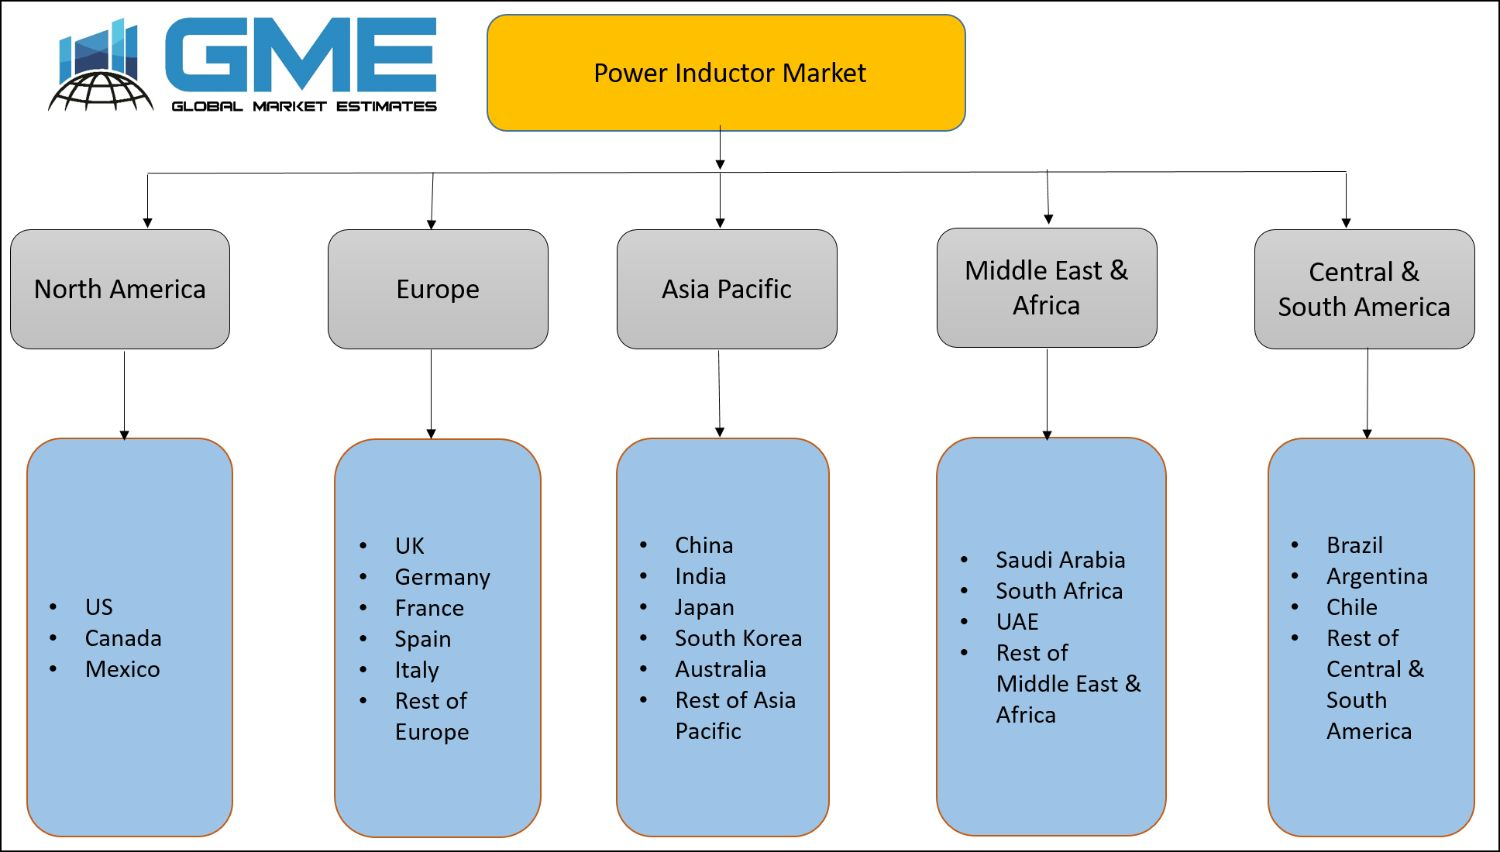 Power Inductor Market